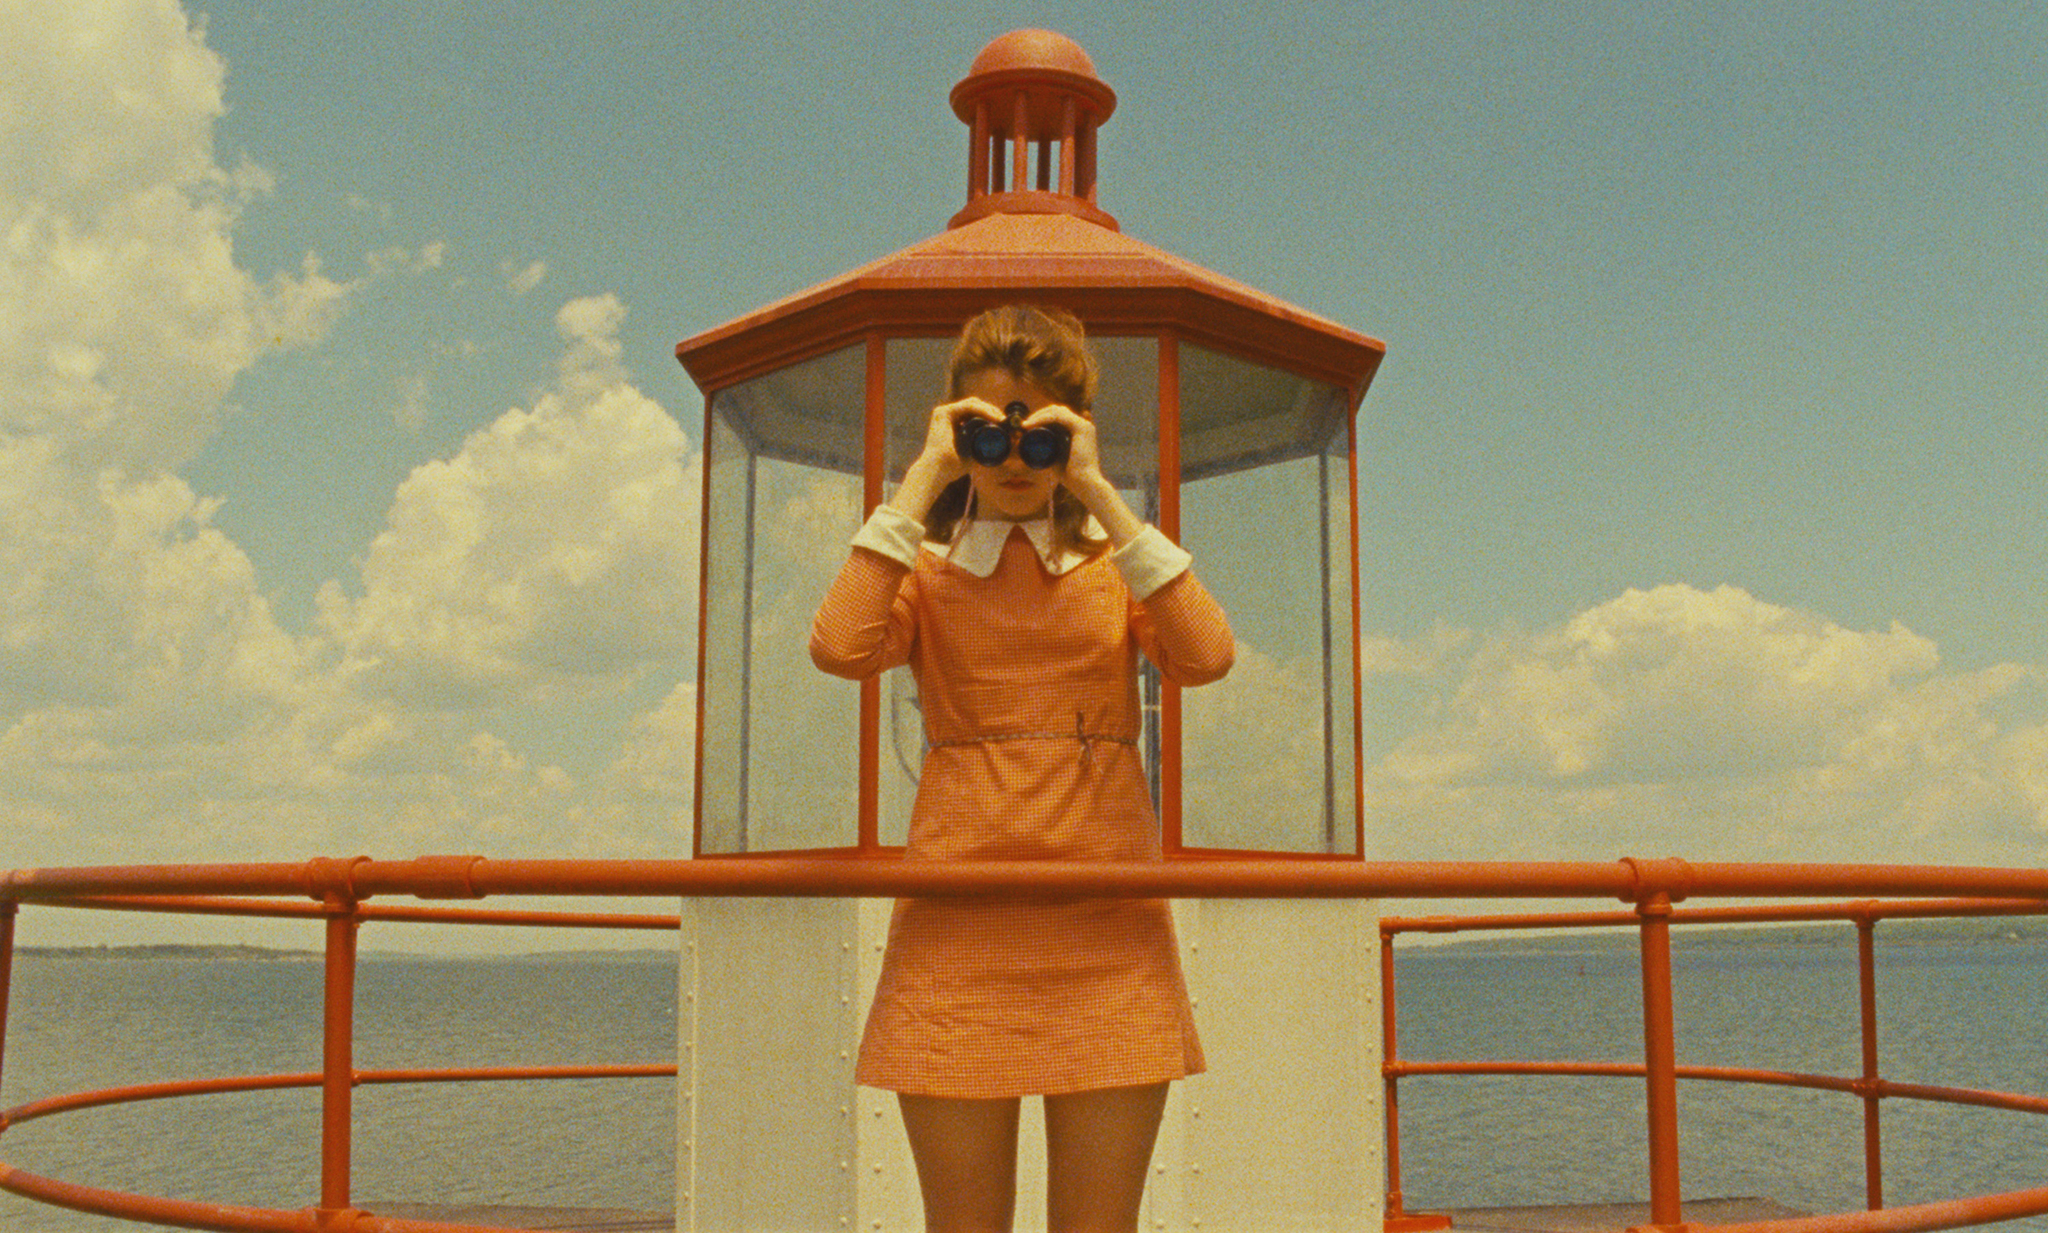 """On Wednesday, July 12, Wes Anderson's coming-of-age gem """"Moonrise Kingdom"""